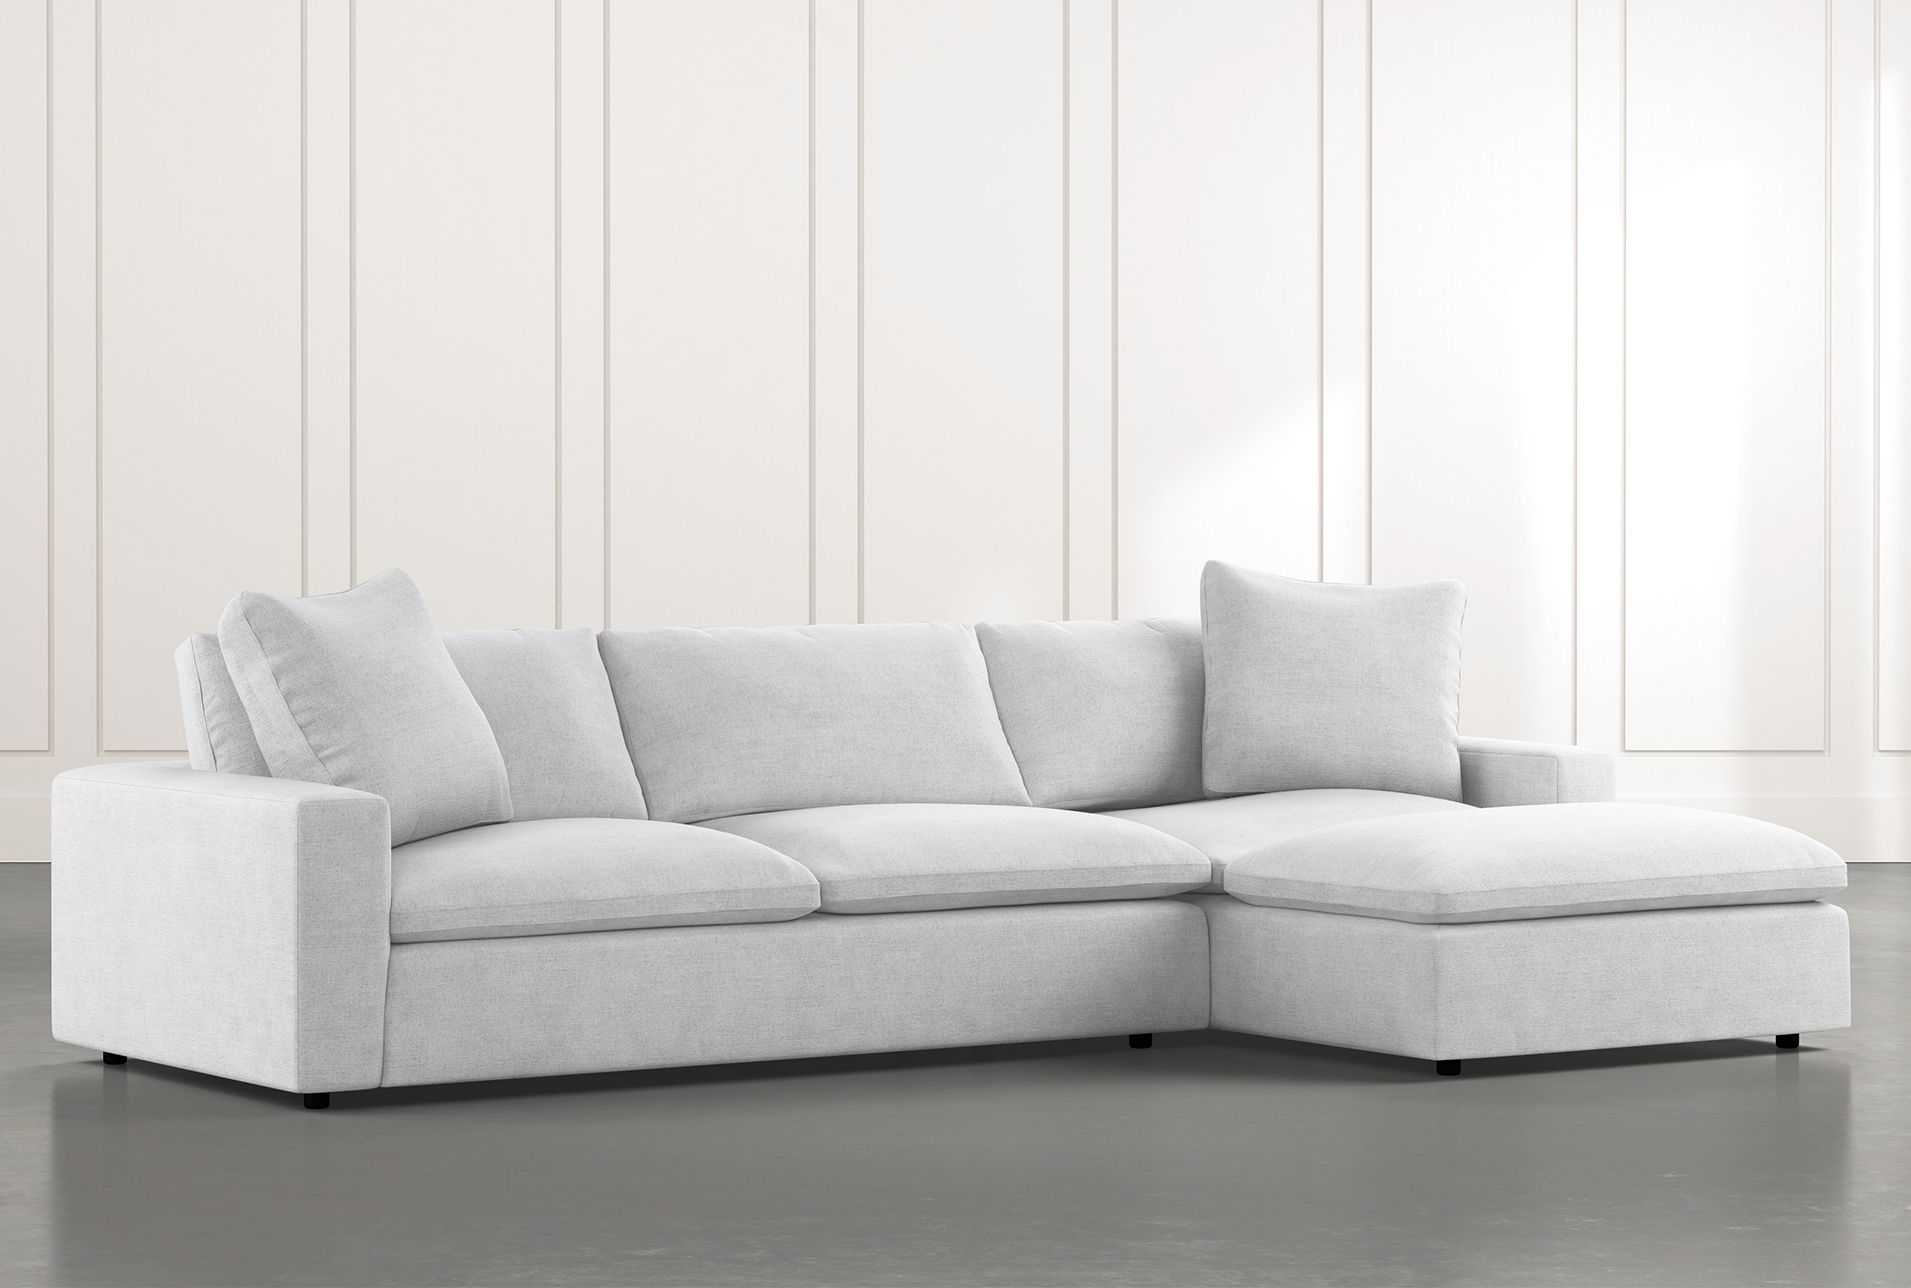 Utopia 2 Piece Sectional With Right Arm Facing Chaise Sectional 2 Piece Sectional Sofa Sofa Inspiration